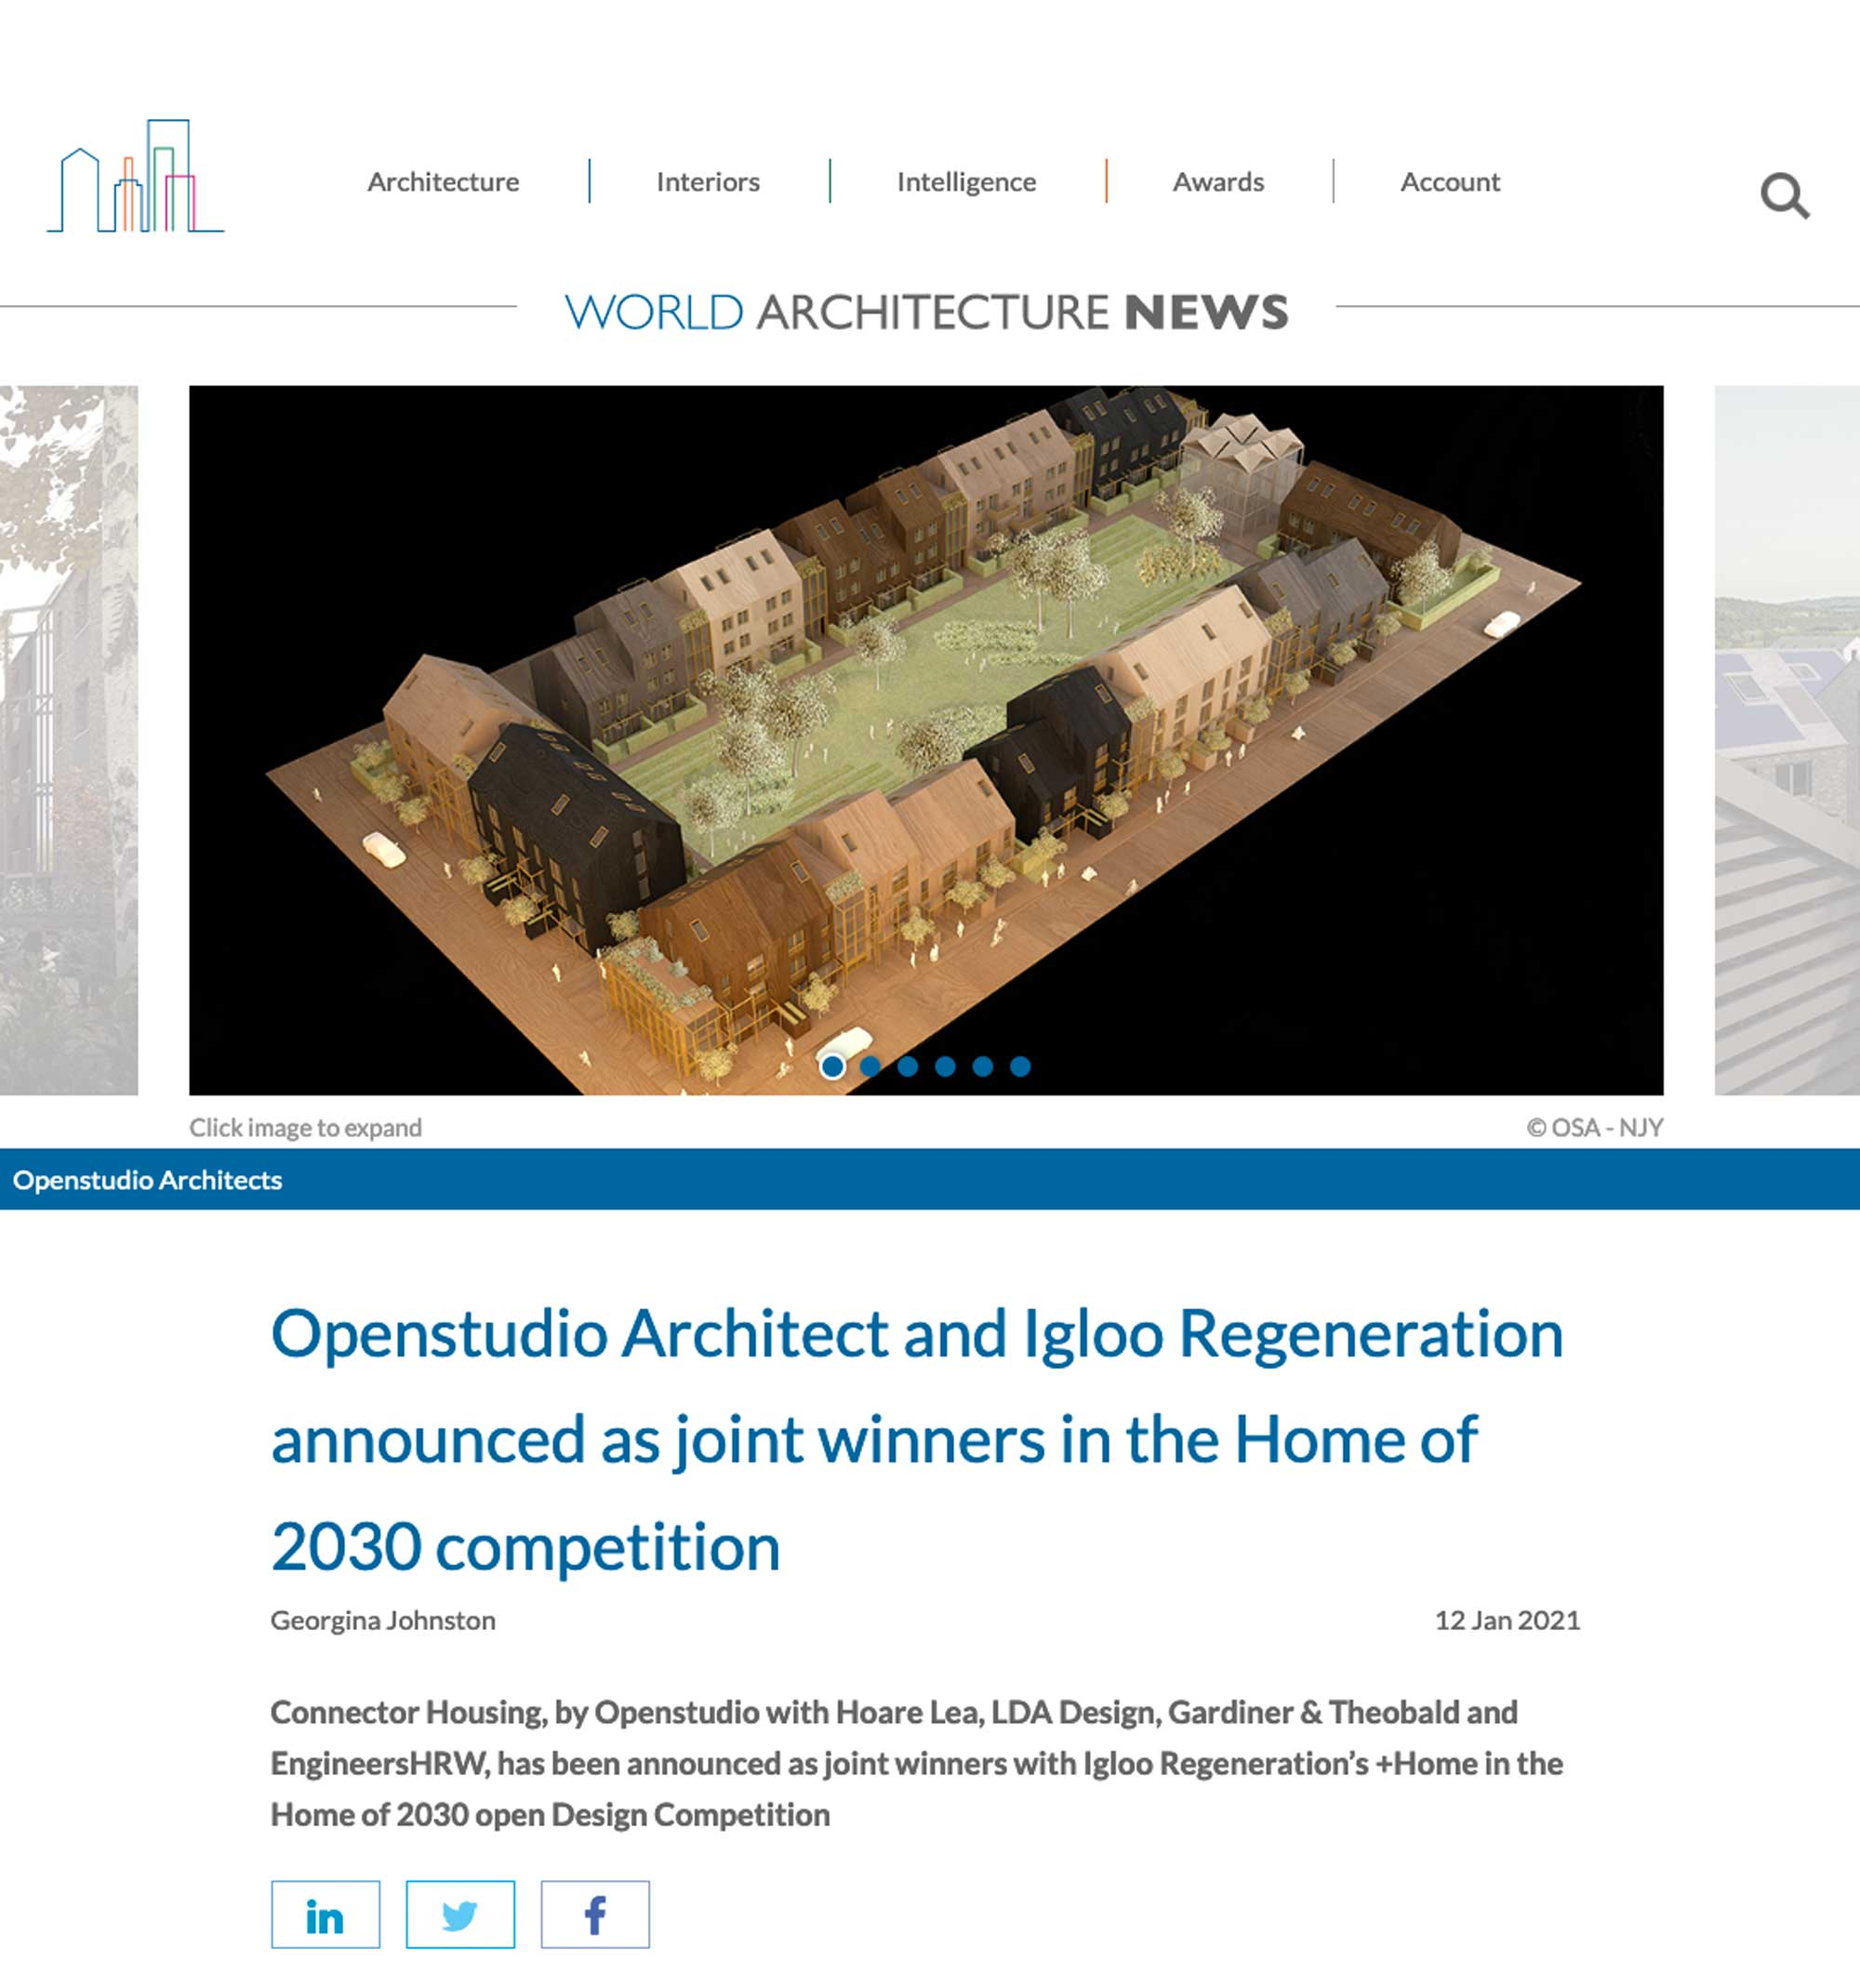 world-architecture-news-openstudio-architects-joint-winner-home-of-2030